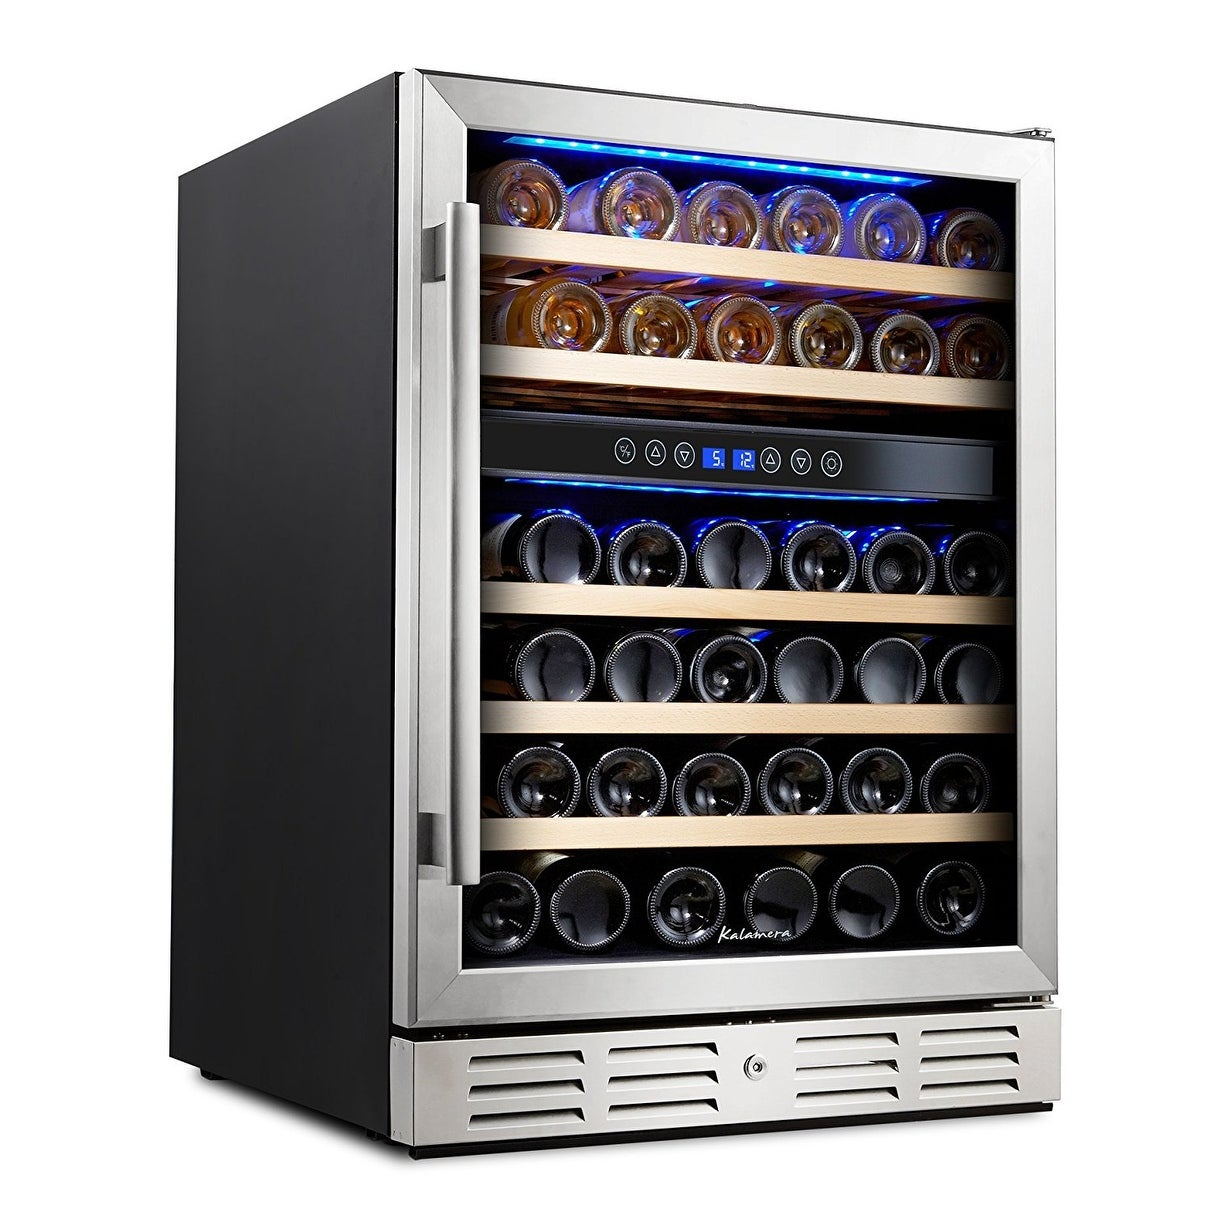 Kalamera 24'' 46-bottle Wine Cooler Refrigerator Built-in Dual Zone, Stainless Steel Door & Handle - Thumbnail 0